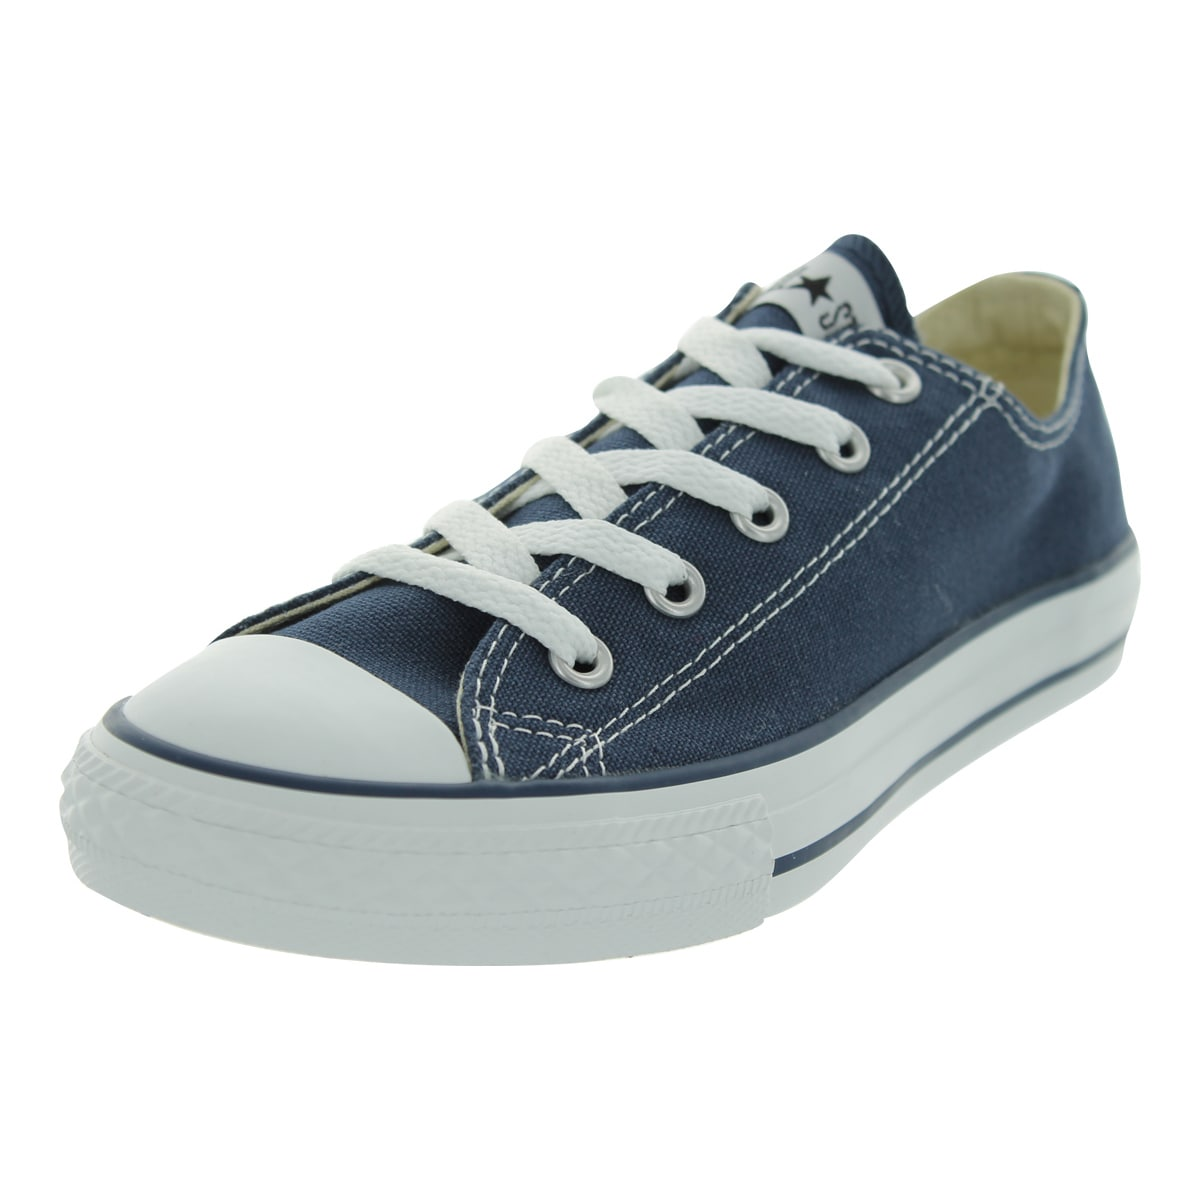 8c8d5788e086 Shop Converse Chuck Taylor All Star Yths Oxford Basketball Shoe - Free  Shipping On Orders Over  45 - Overstock.com - 12321474